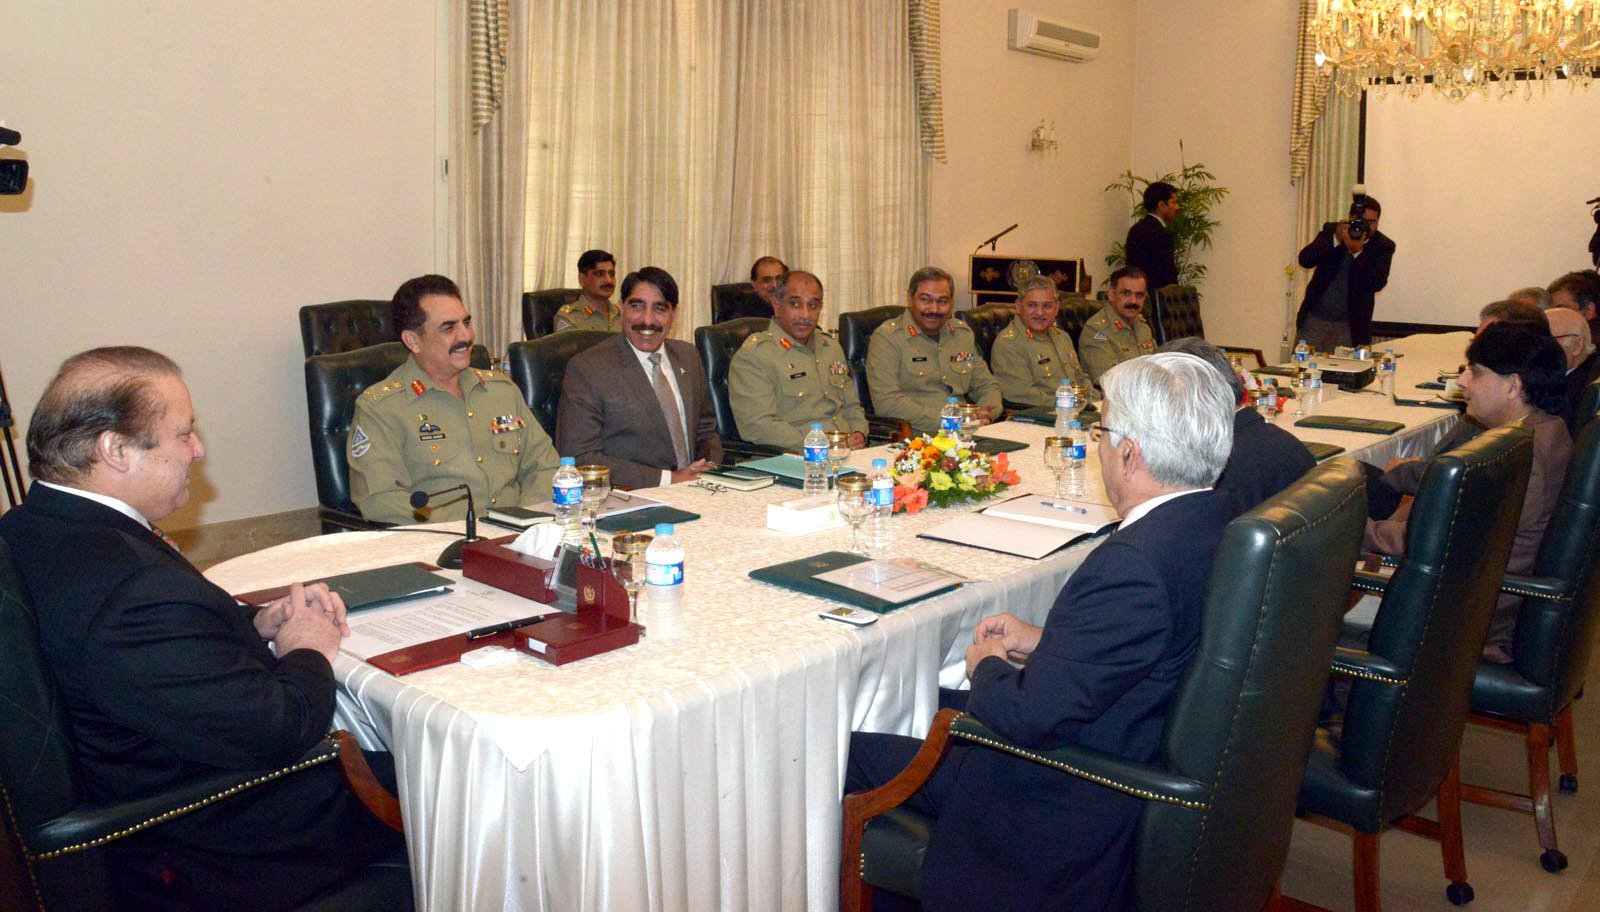 prime minister nawaz sharif chairing the meeting with coas general raheel sharif and other officials to decide matters related to the operation photo inp